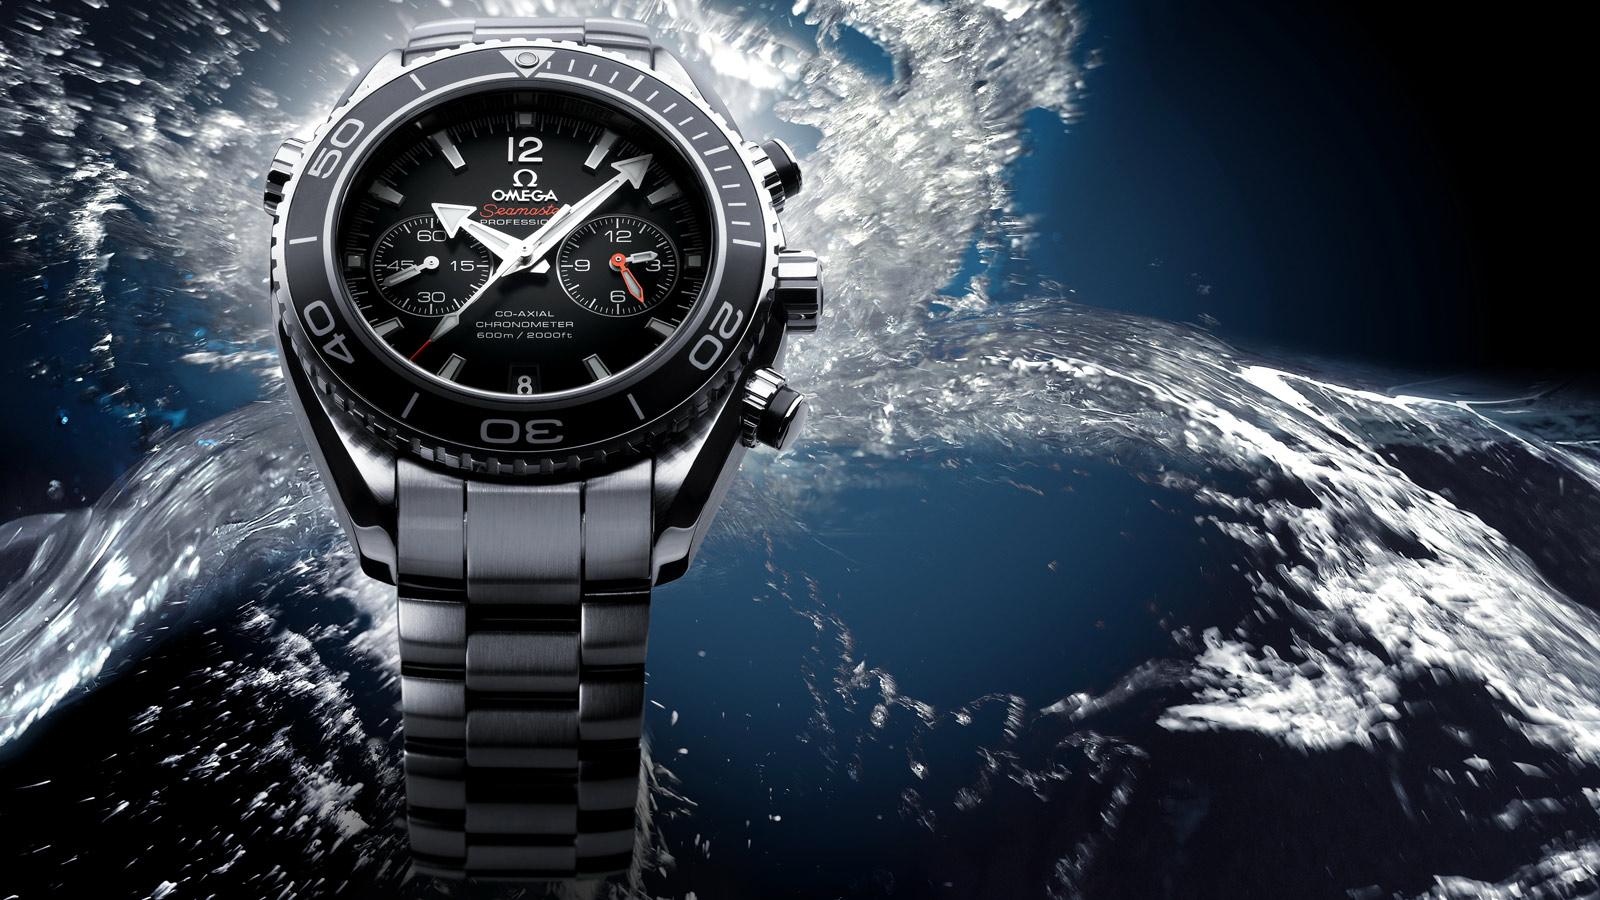 Seamaster Planet Ocean 600M Planet Ocean 600M Omega Co‑Axial Chronograph 45.5 mm - 232.30.46.51.01.001 - View 3